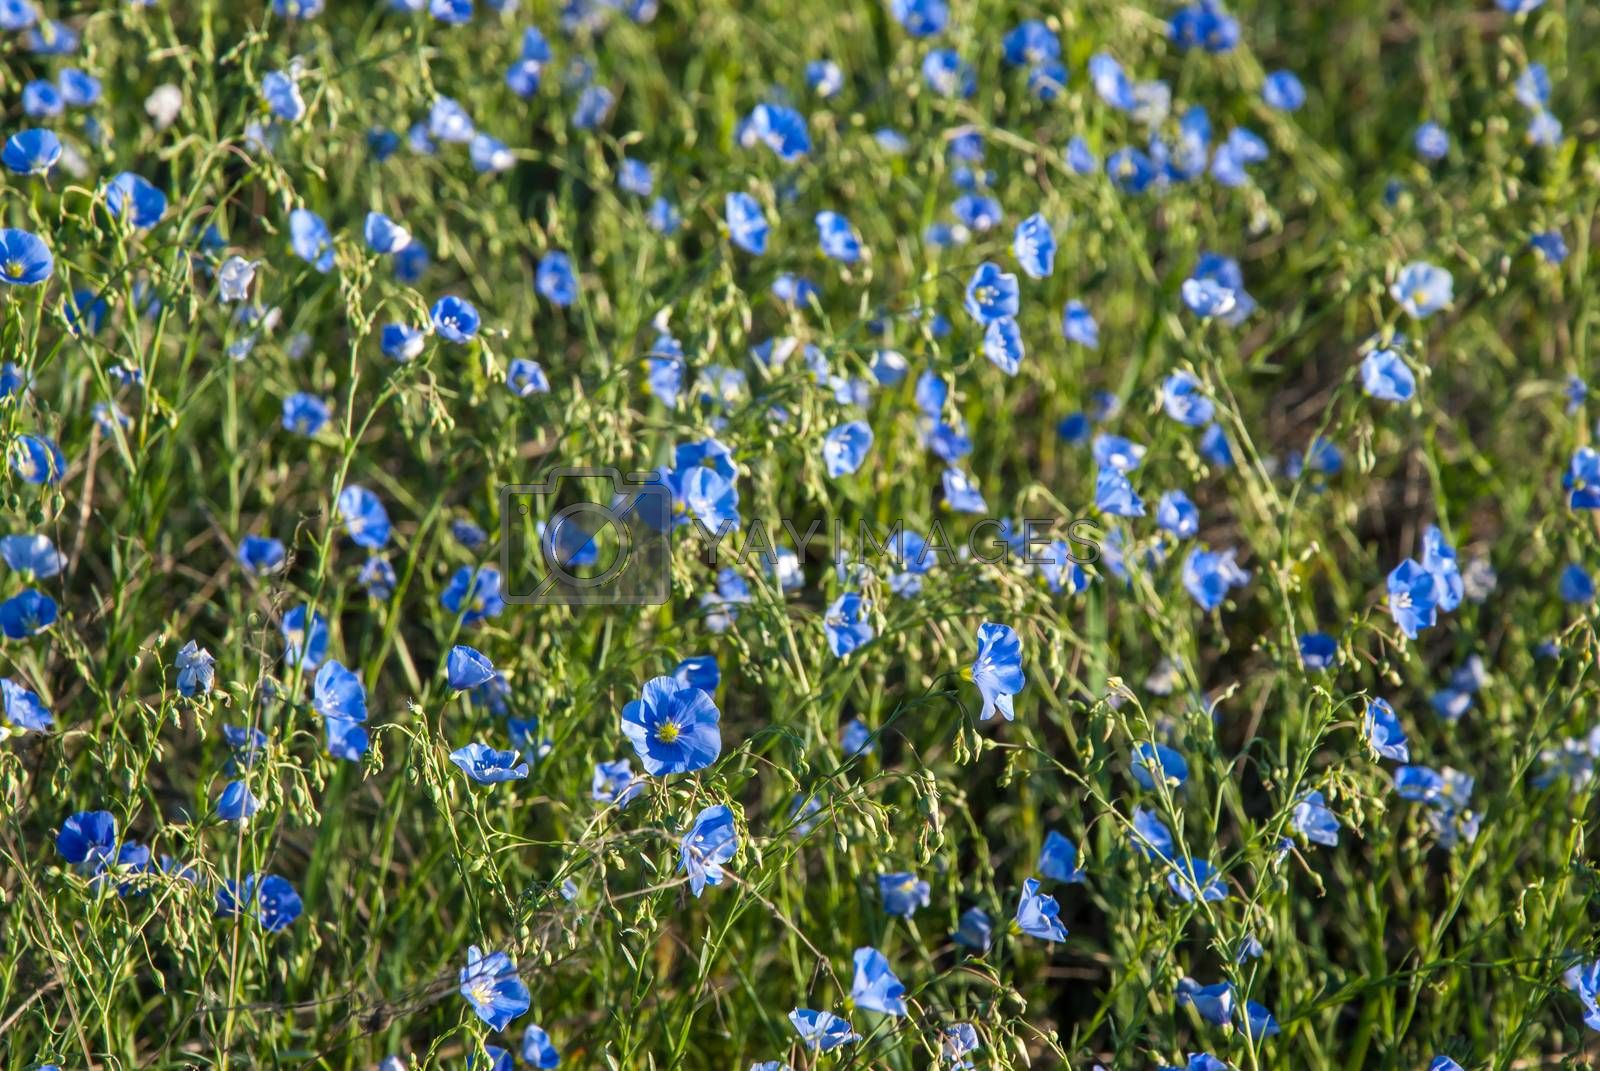 Landscape with meadow of blue flax flowers, spring sunny day